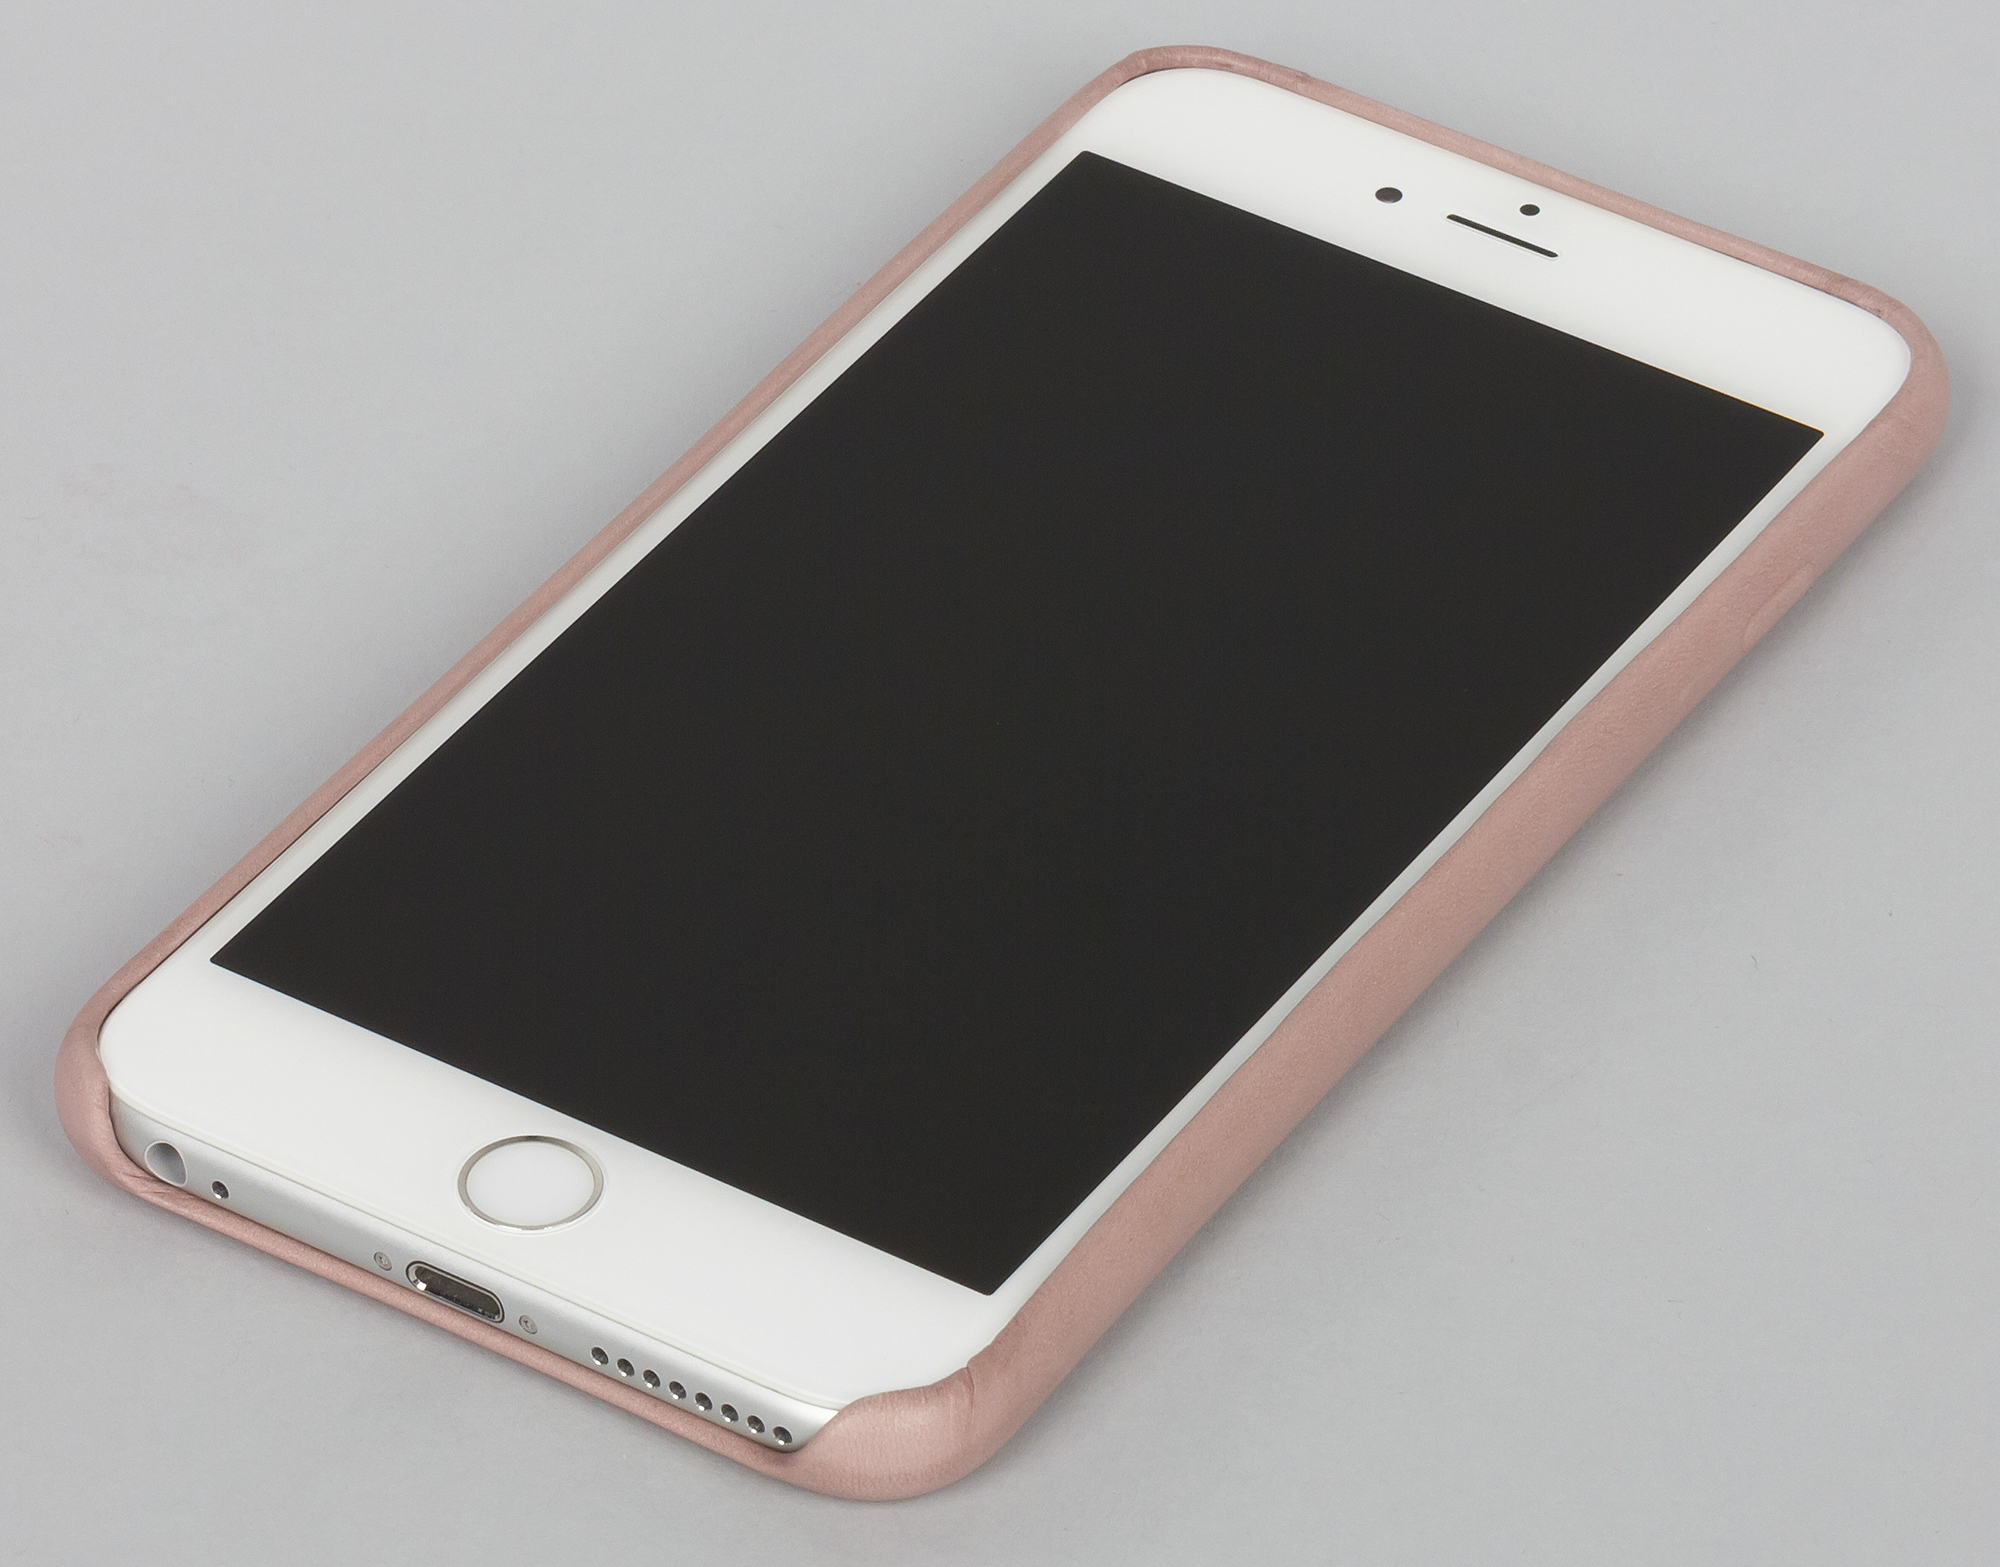 iphone 6 s plus подробный обзор и тестирование apple iphone 6s plus 1230